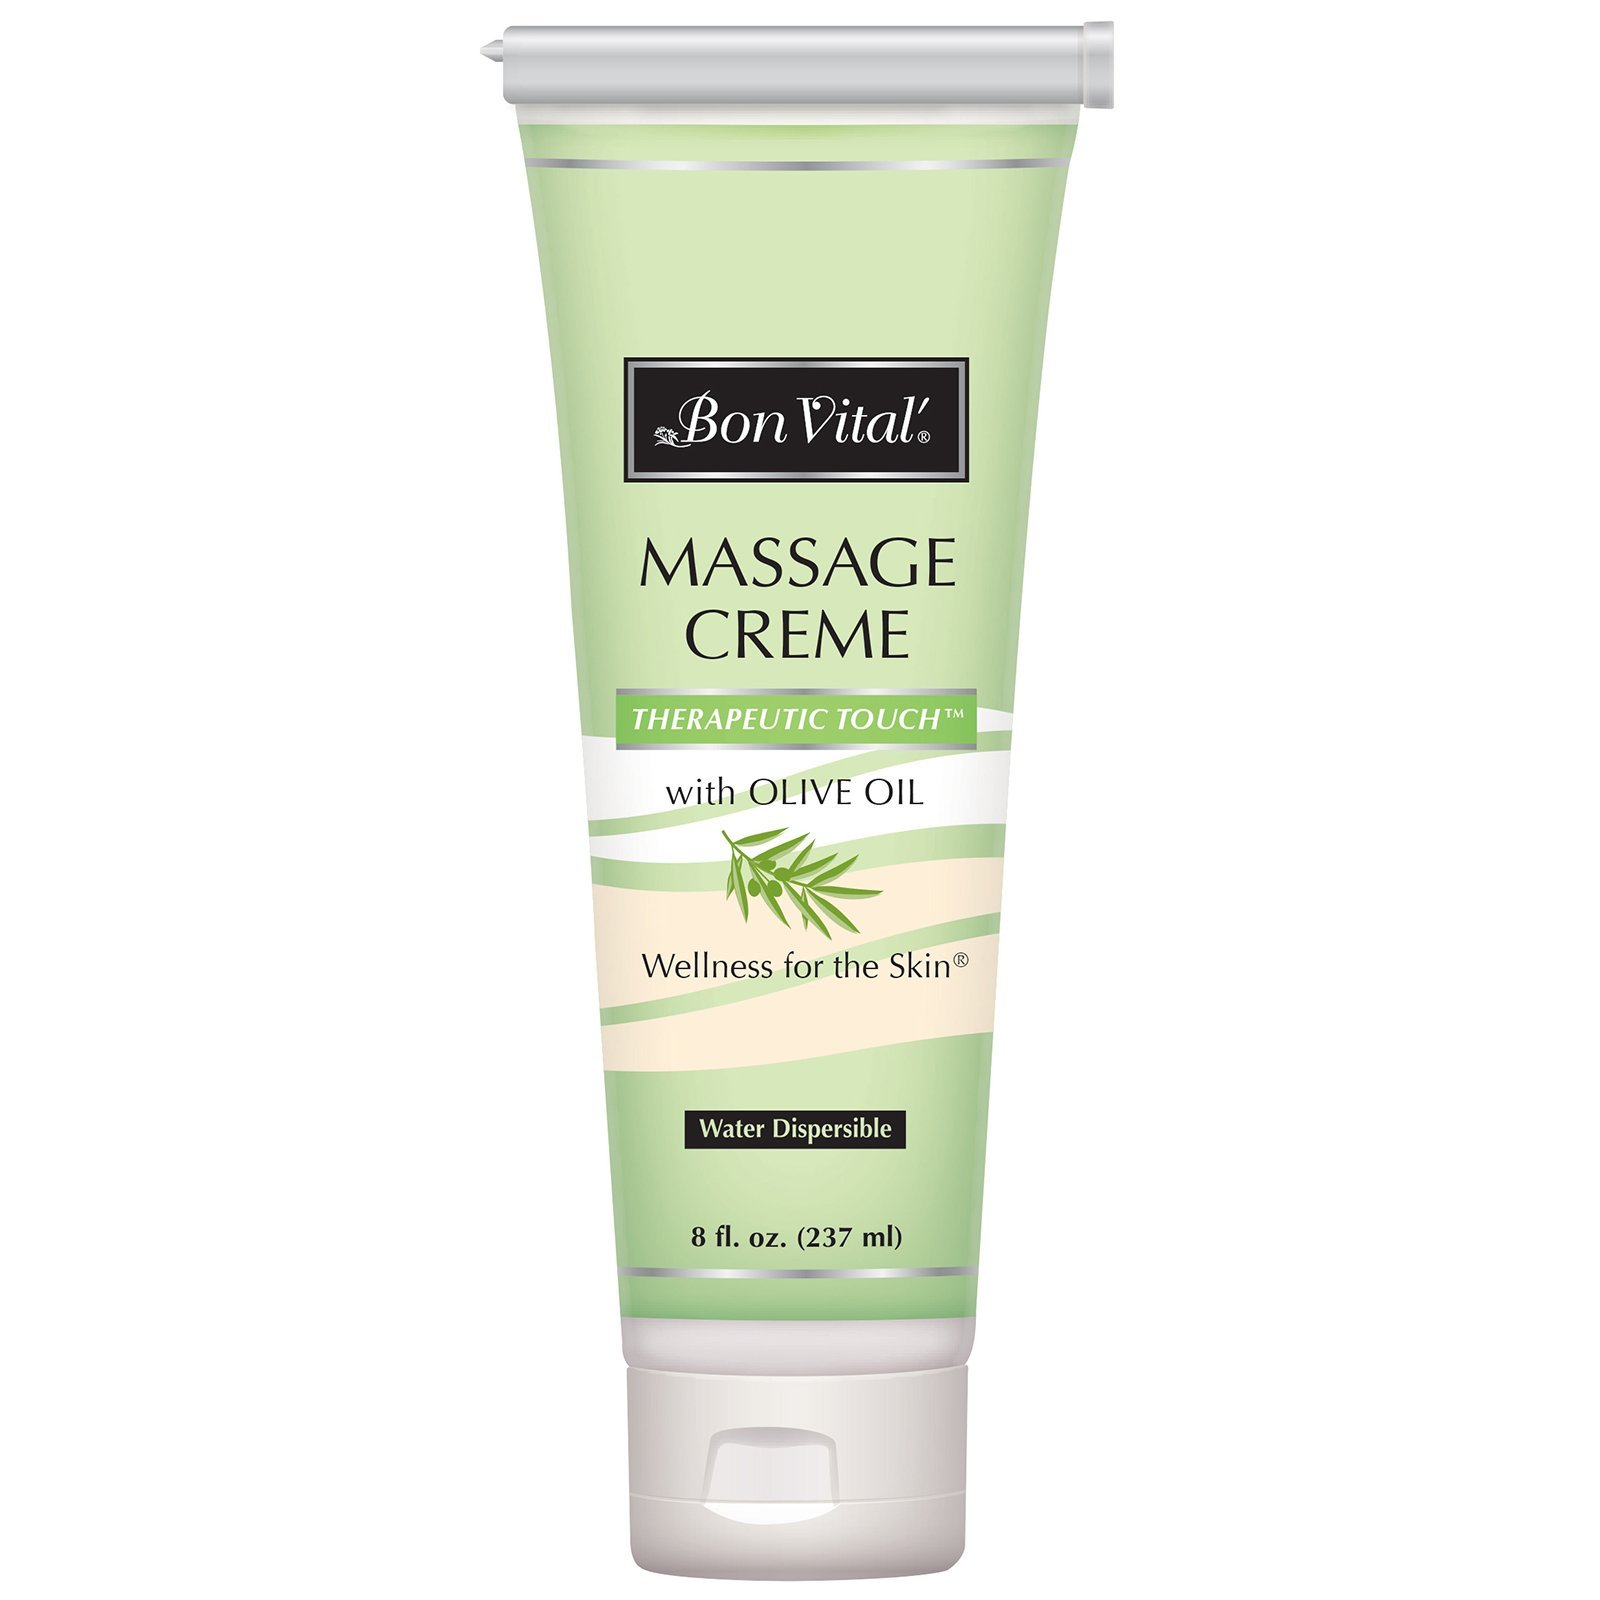 Bon Vital' Therapeutic Touch Massage Crème, Professional Massage Therapy Cream with Olive Oil to Repair Dry Skin & Soothe Sore Muscles, Full Body Moisturizer For Youthful Looking Skin, 8 Ounce